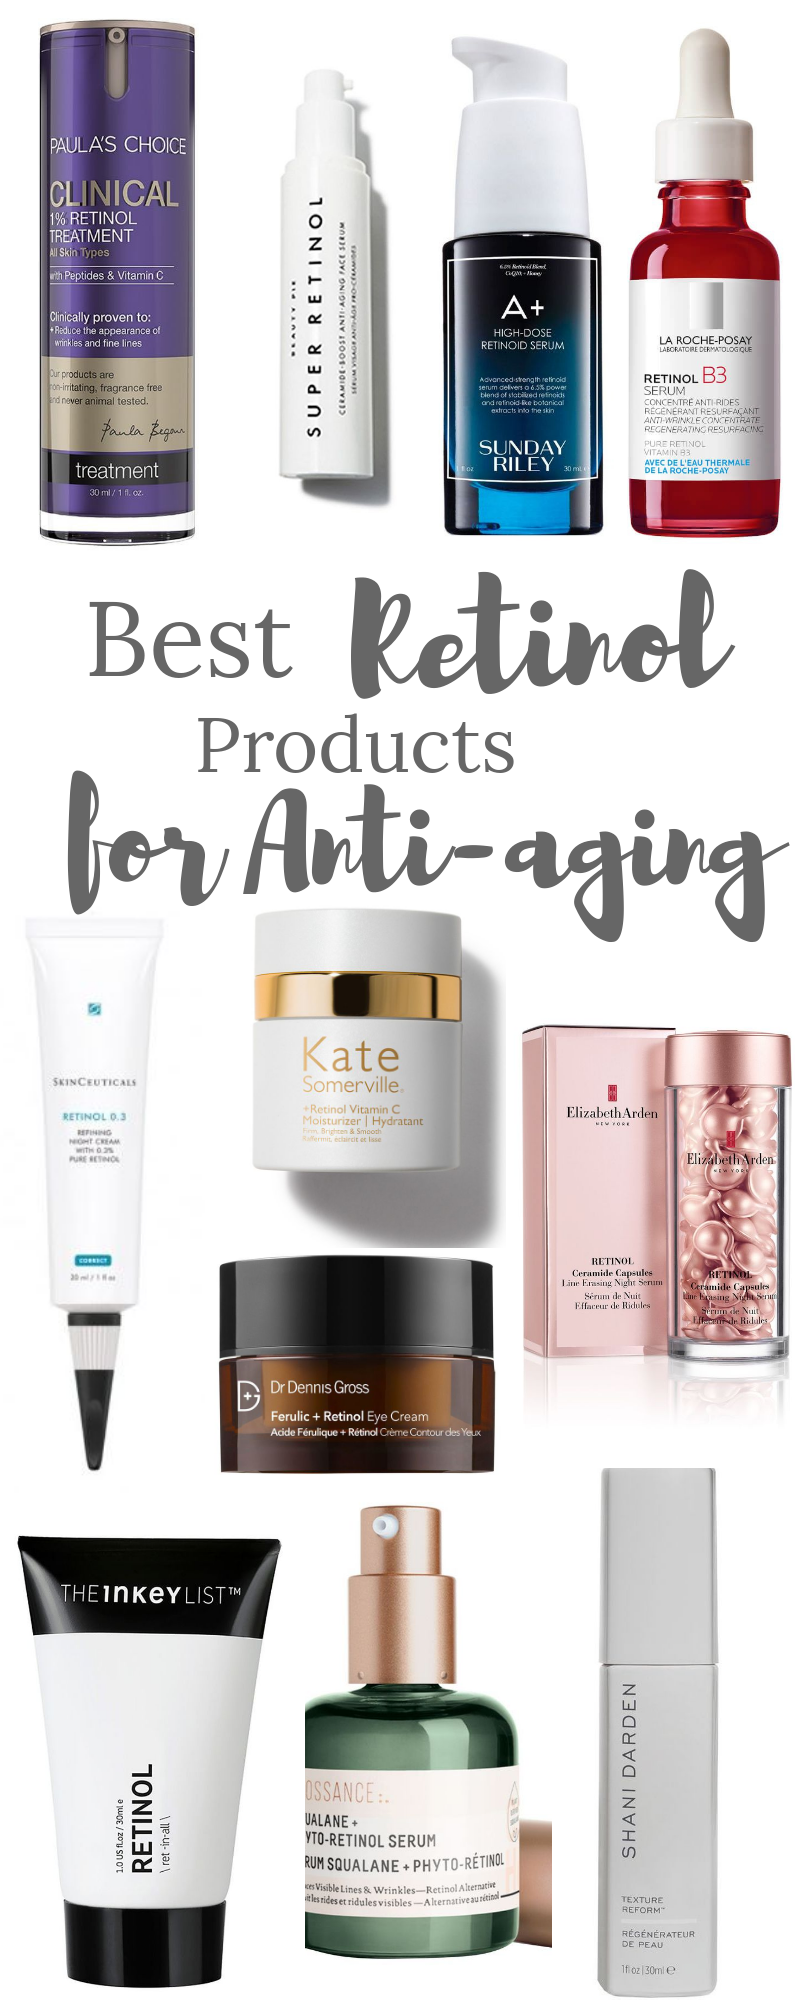 Your Guide To Retinoids And The Best Retinol Products For Antiaging In 2020 Aging Skin Care Diy Retinol Anti Aging Skin Products